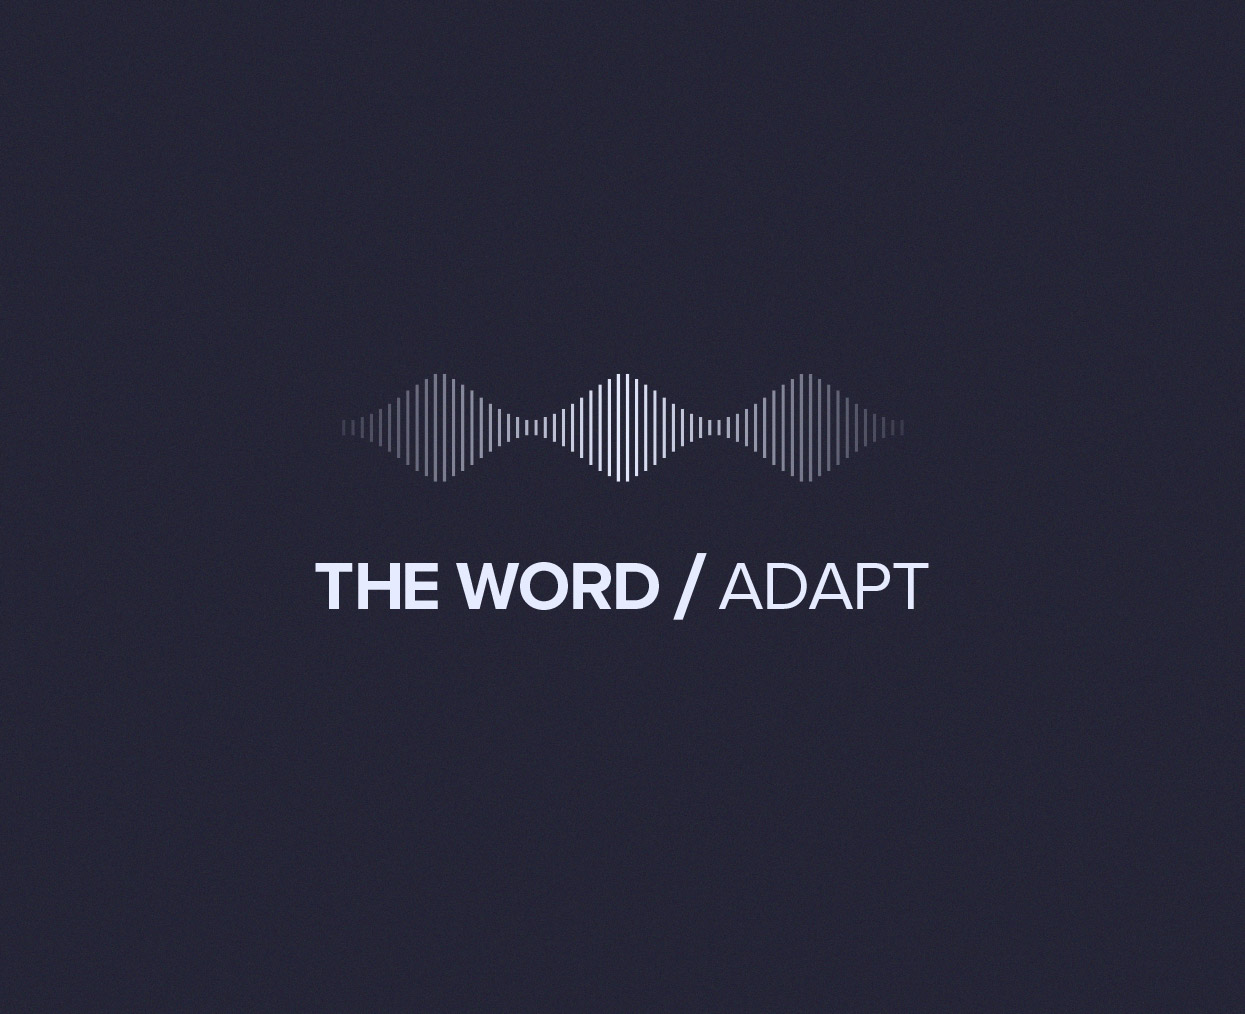 THE WORD/Adapt podcast hero image